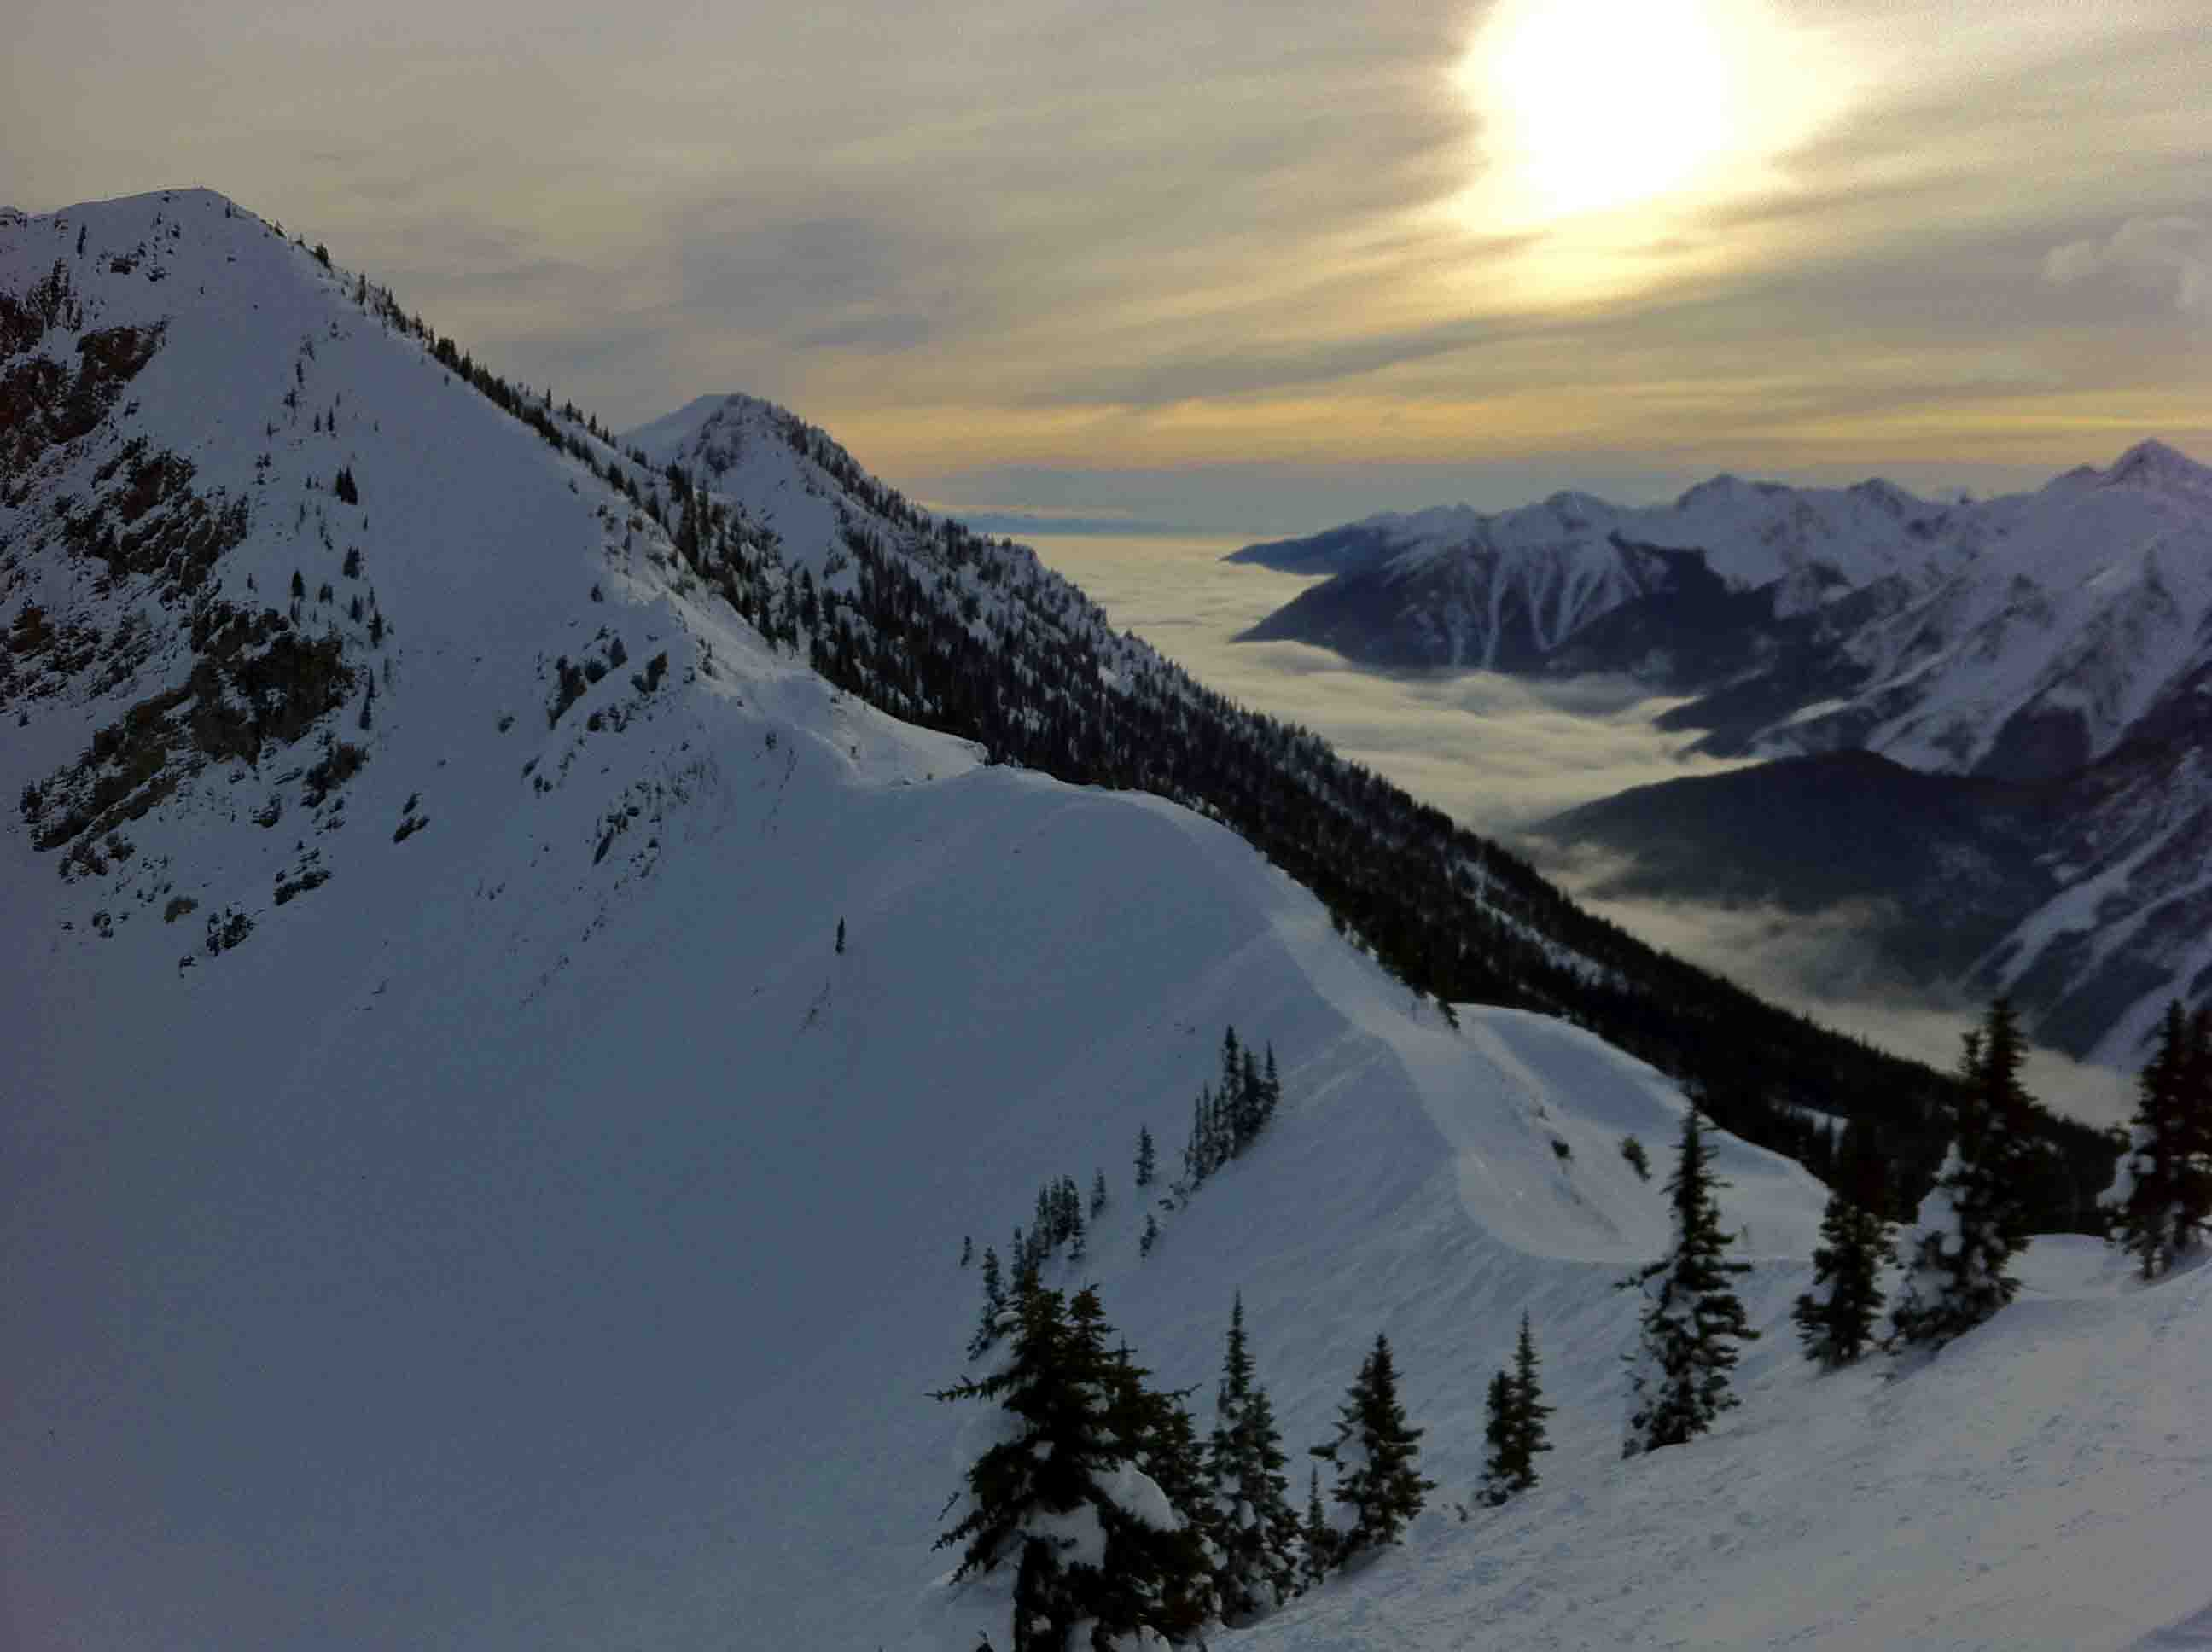 Skiing Kicking Horse Resort in Golden, British Columbia